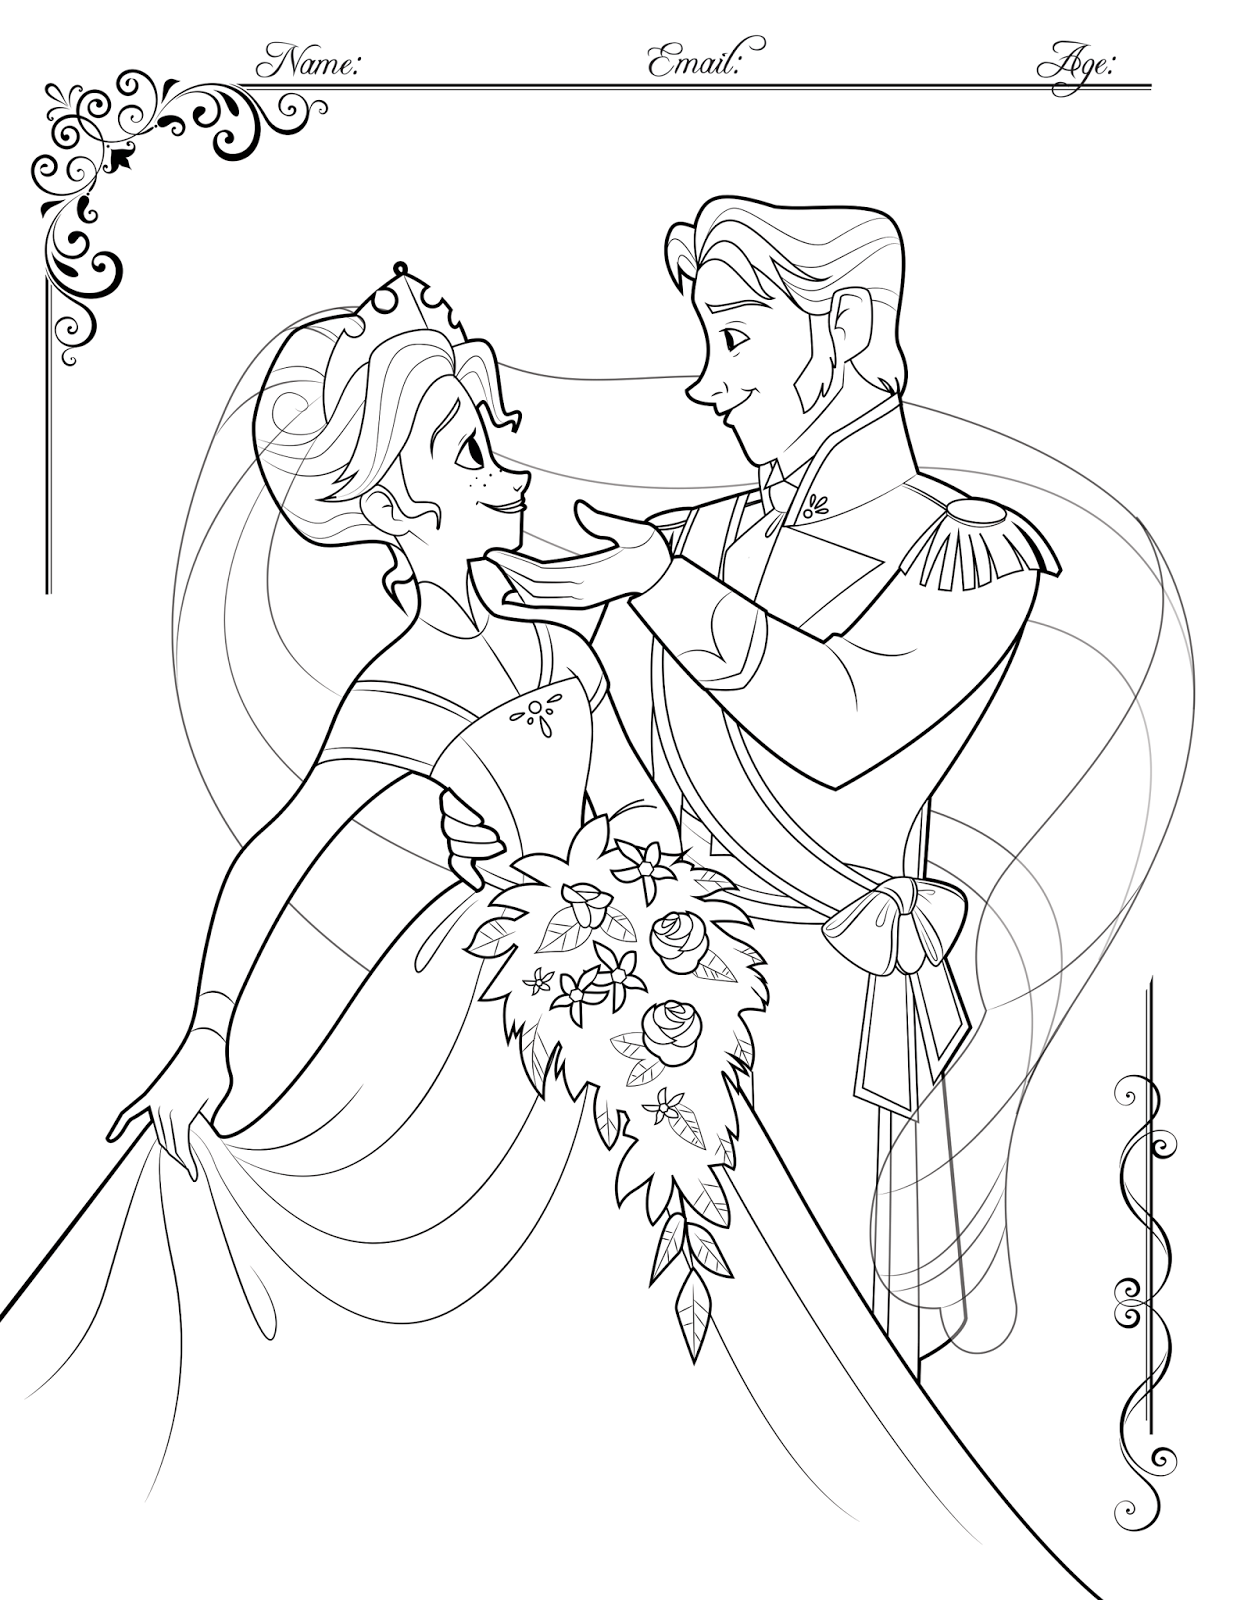 Coloring Contest On My Blog Hans And Annas Wedding Day Oh Come They Had That Adorable Song Together Frozen